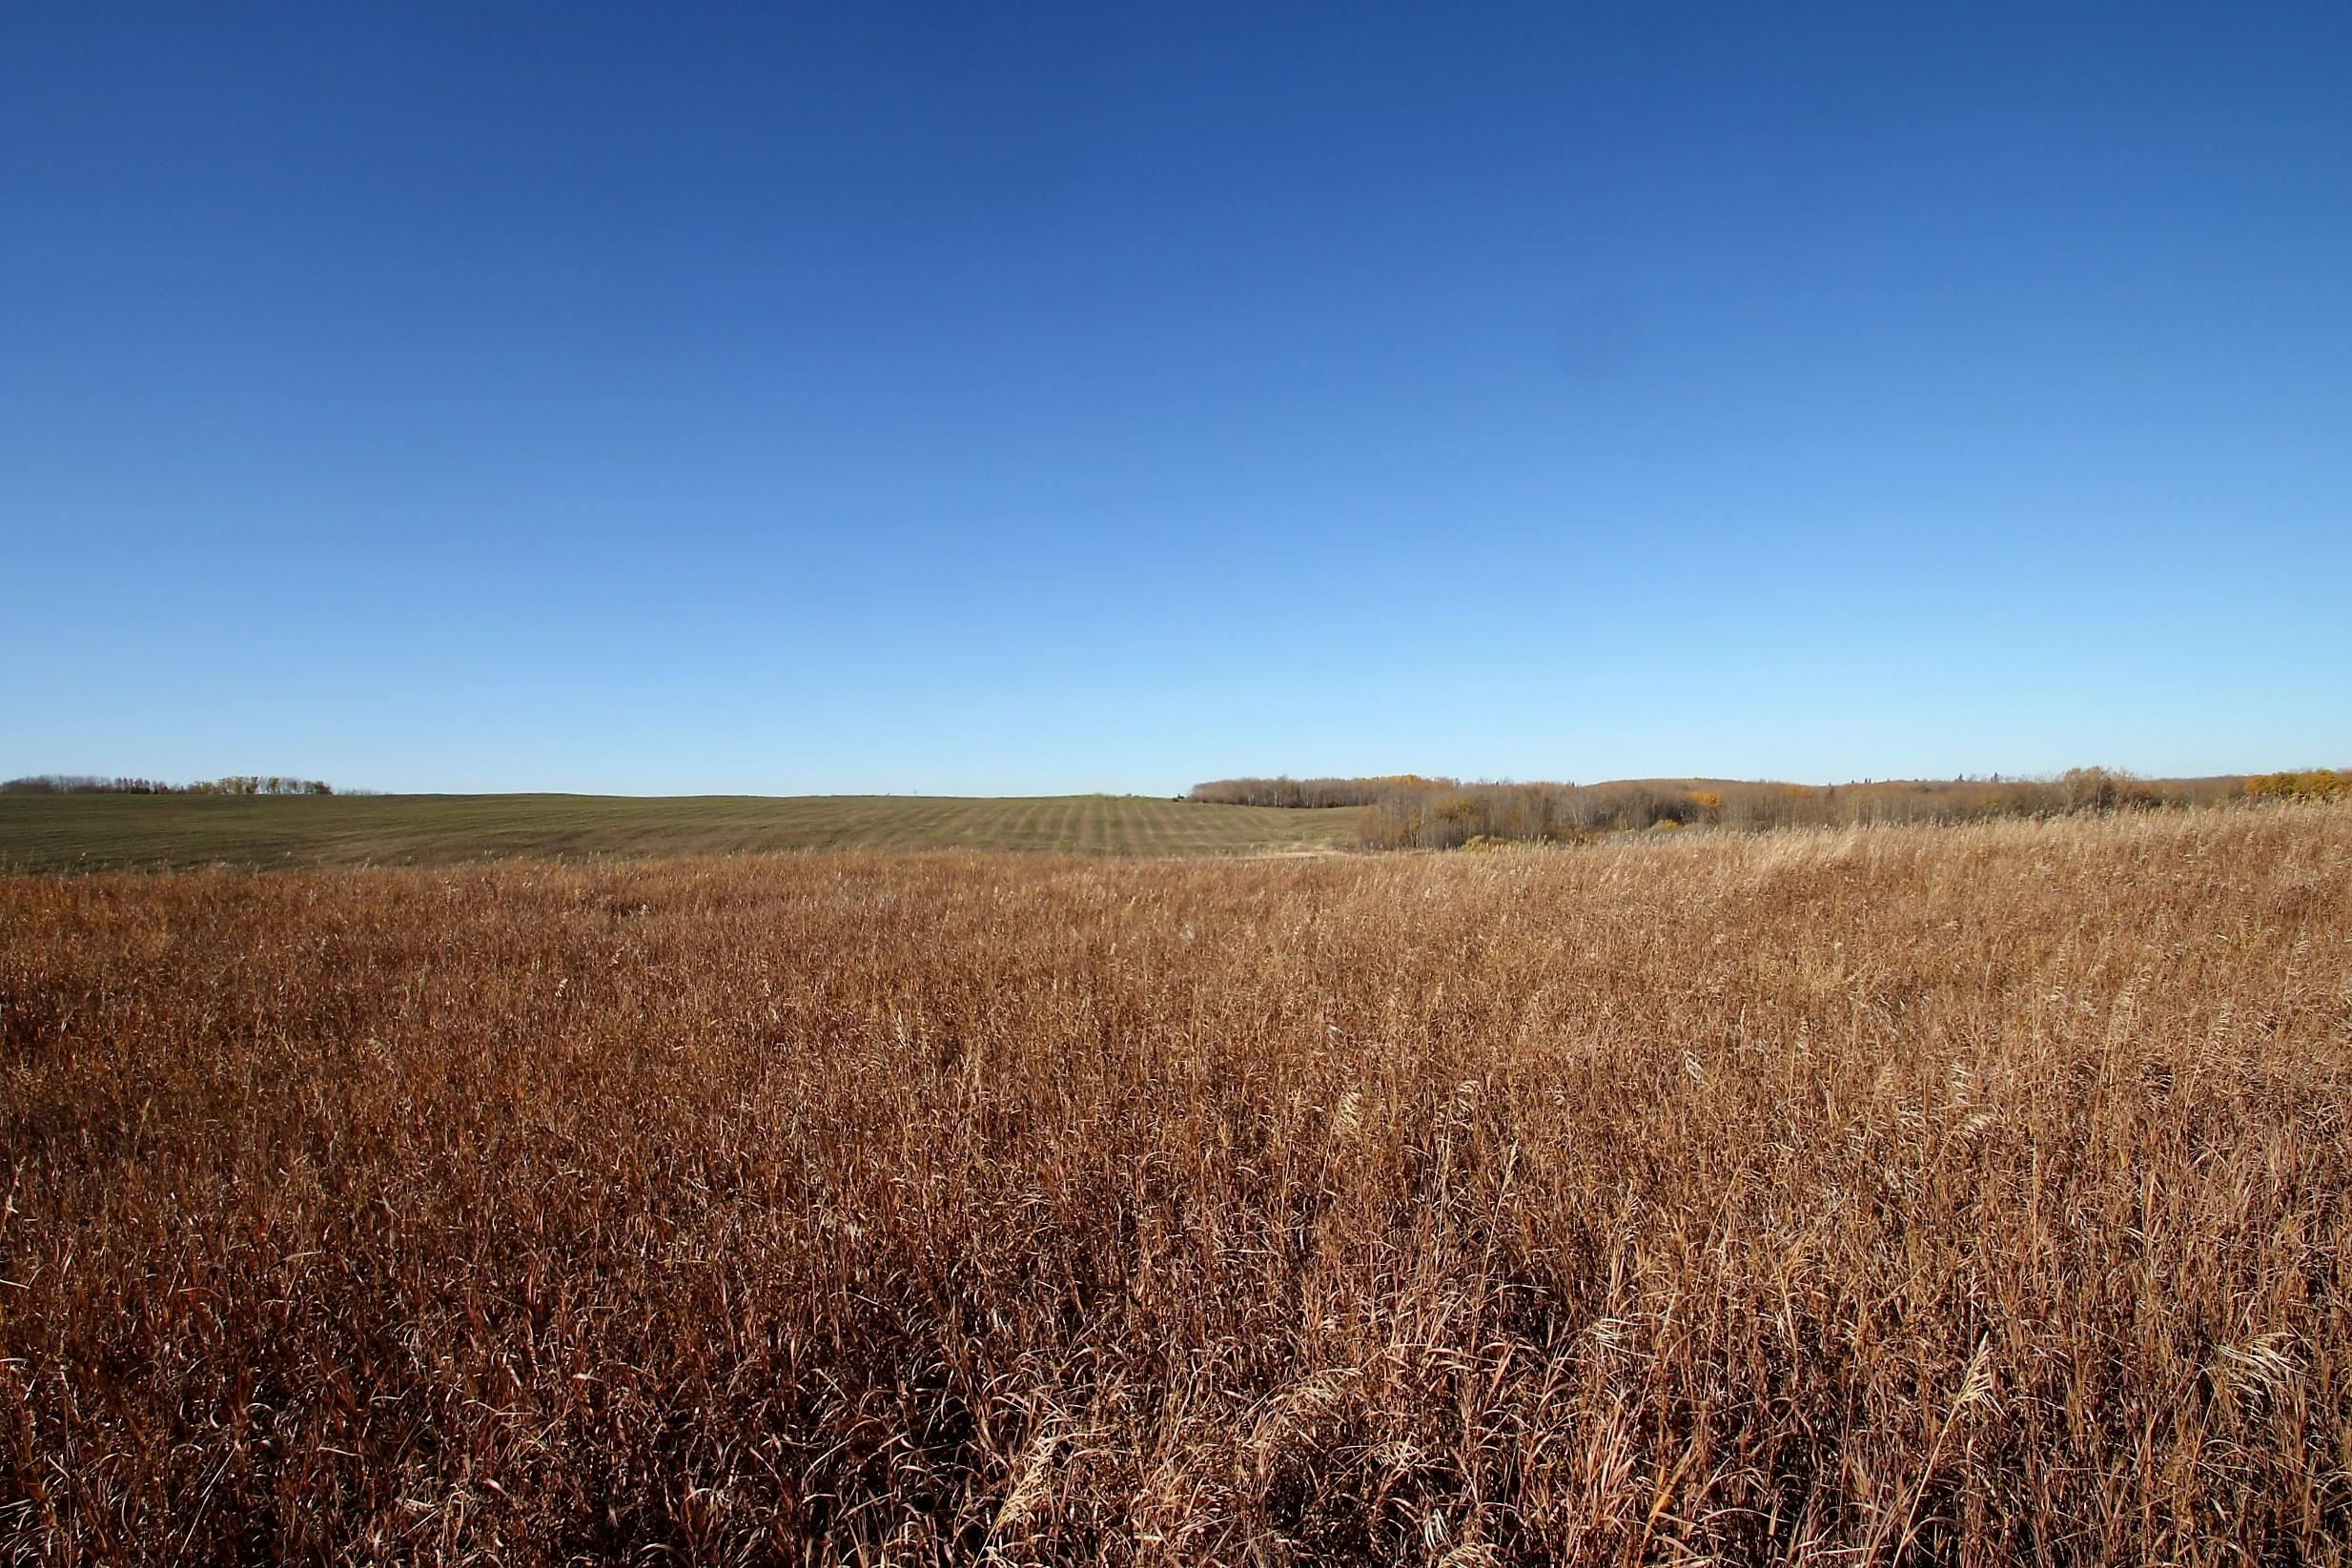 Main Photo: 59216 Rg Rd 95A: Rural St. Paul County Rural Land/Vacant Lot for sale : MLS®# E4266221